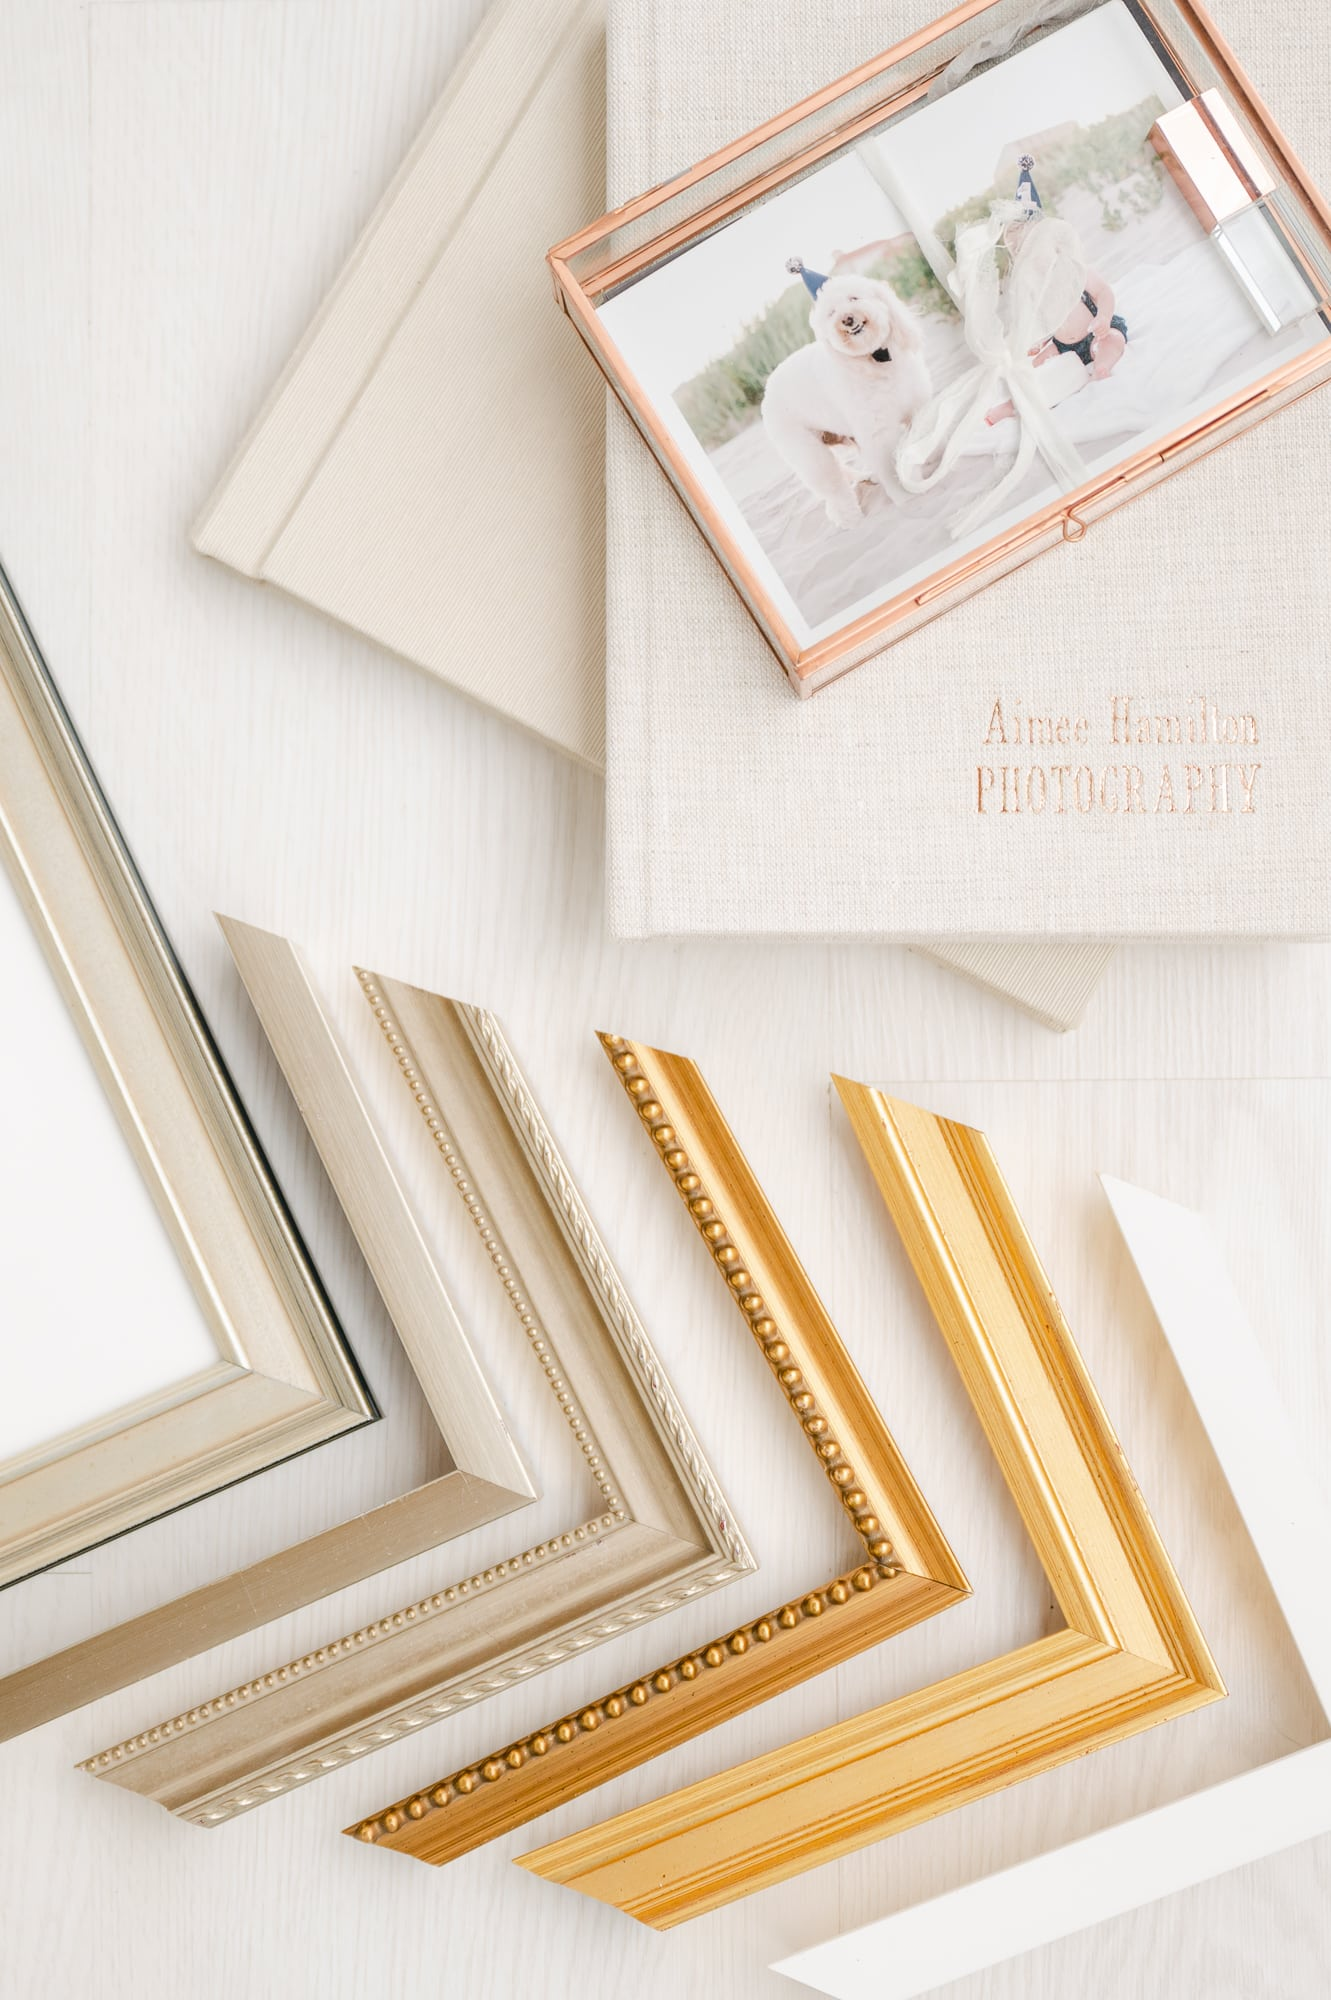 Dallas' luxury newborn photographer offers albums for preserving memories